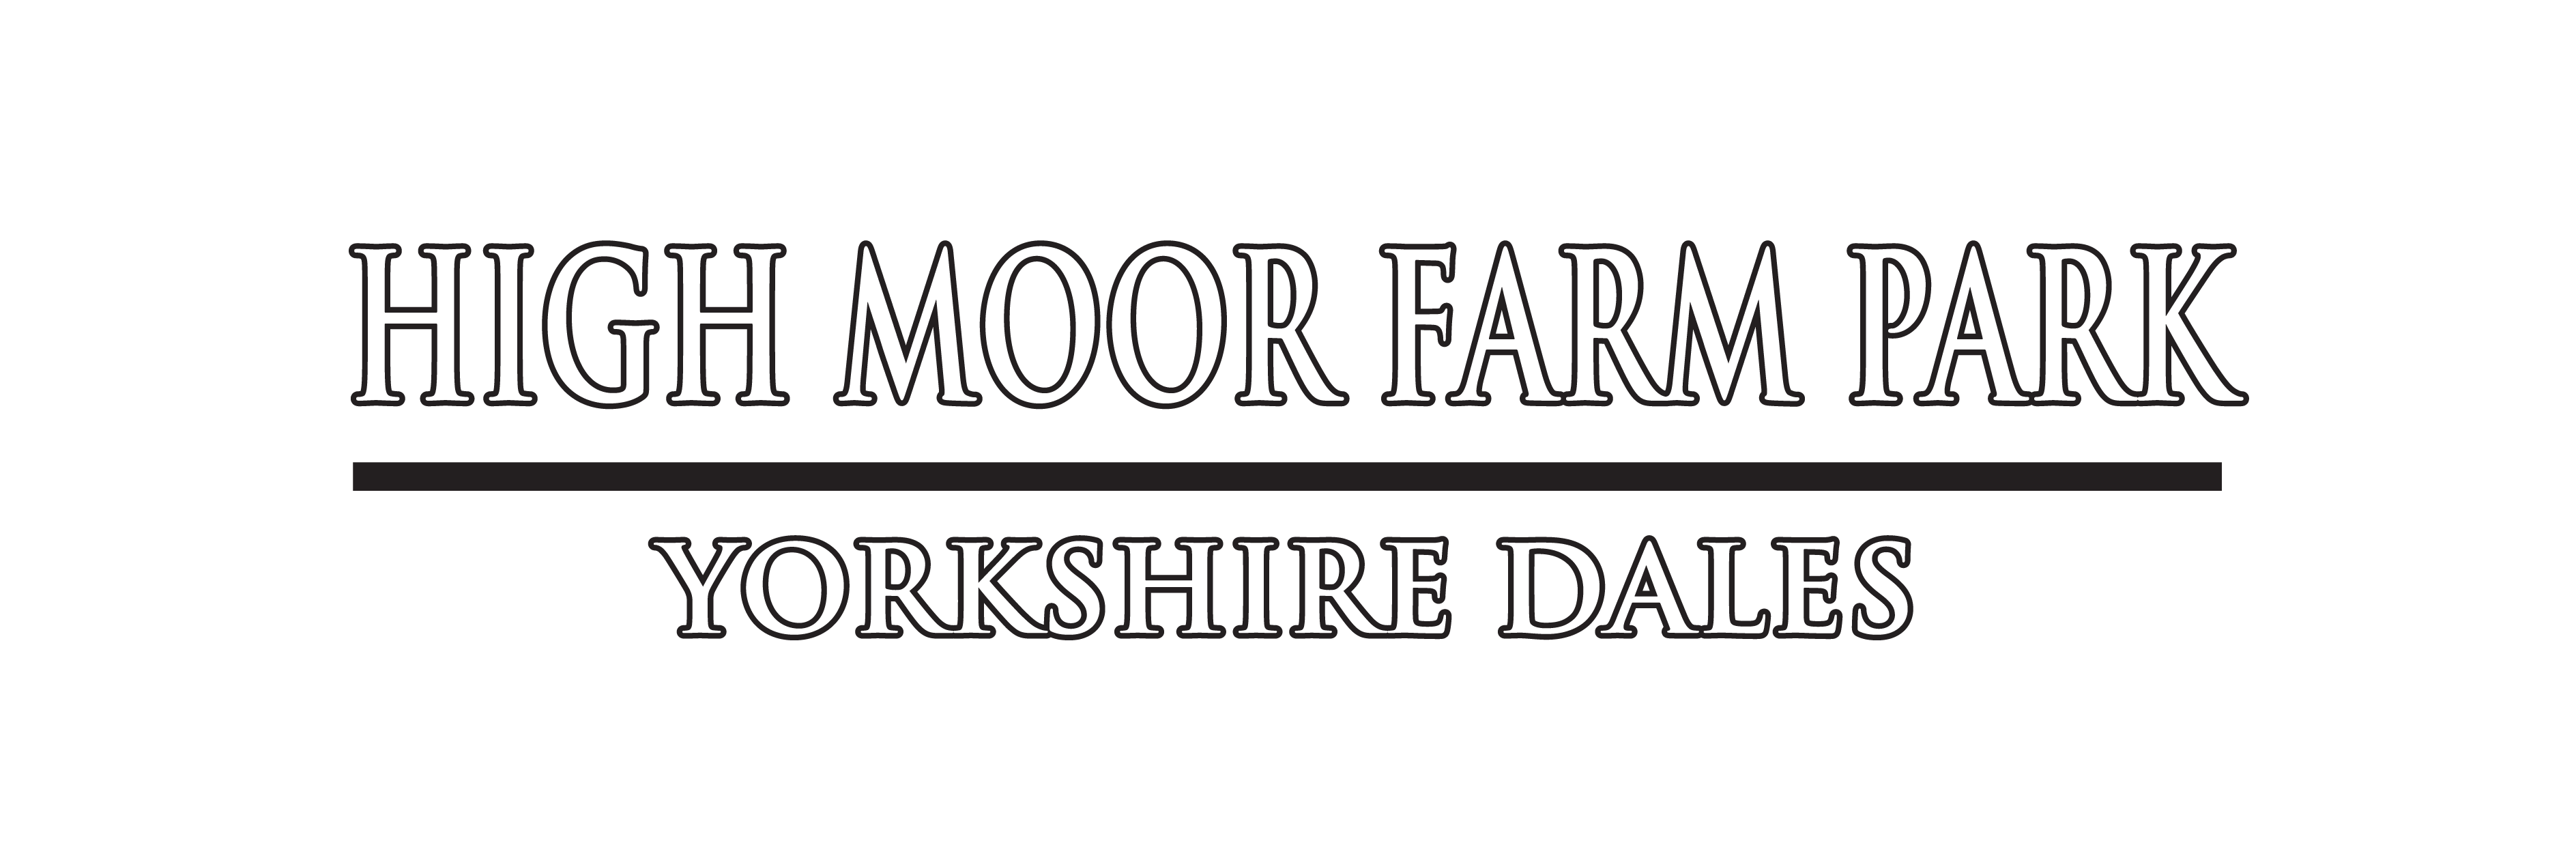 High Moor Farm Park, Caravan Park Yorkshire Dale, Holiday Park Yorkshire Daless